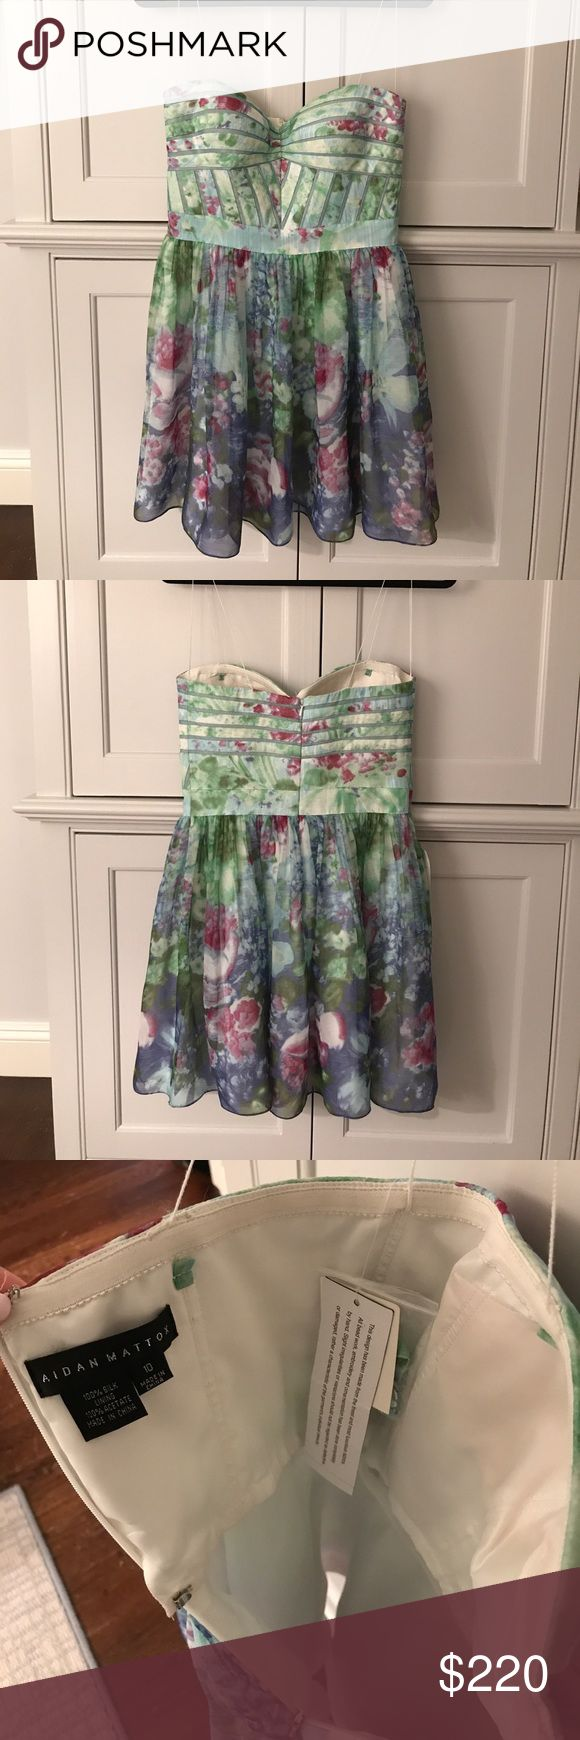 Aidan Mattox strapless floral dress! Beautiful green blue and purple floral dress. Size 10. NEW with tags!!! 26 inches from top to bottom. So pretty for summer! Aidan Mattox Dresses Strapless